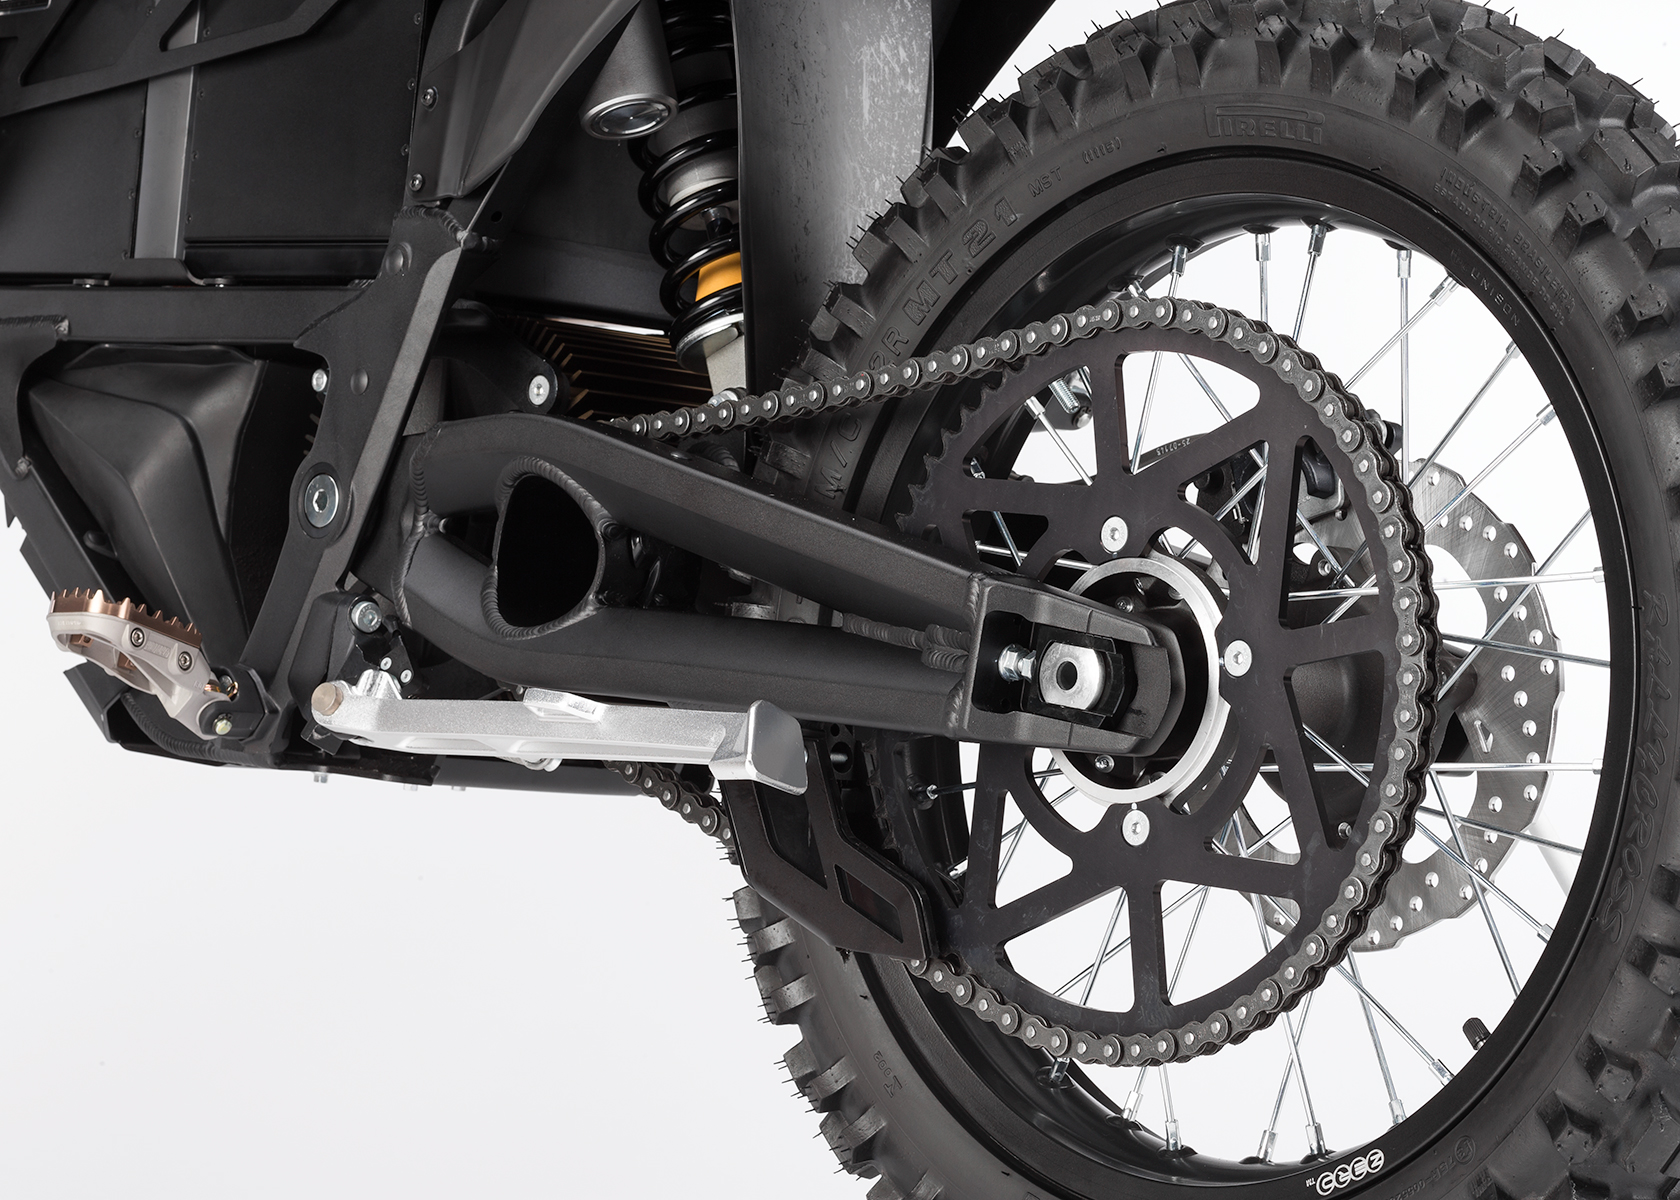 2015 Zero Police Electric Motorcycle: Chain